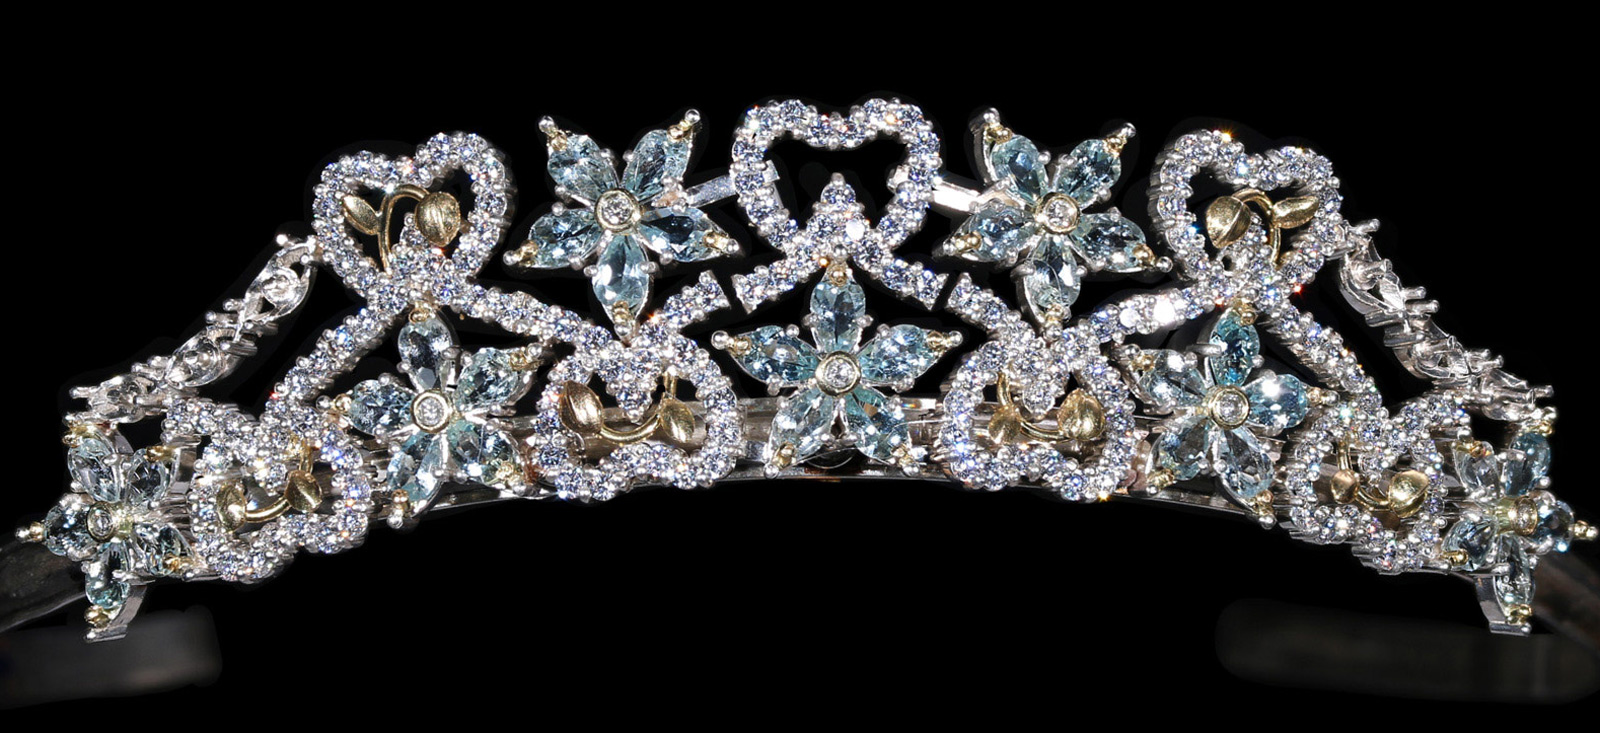 The Amage Aquamarine with Diamond Tiara in hallmarked 18ct Gold and Silver